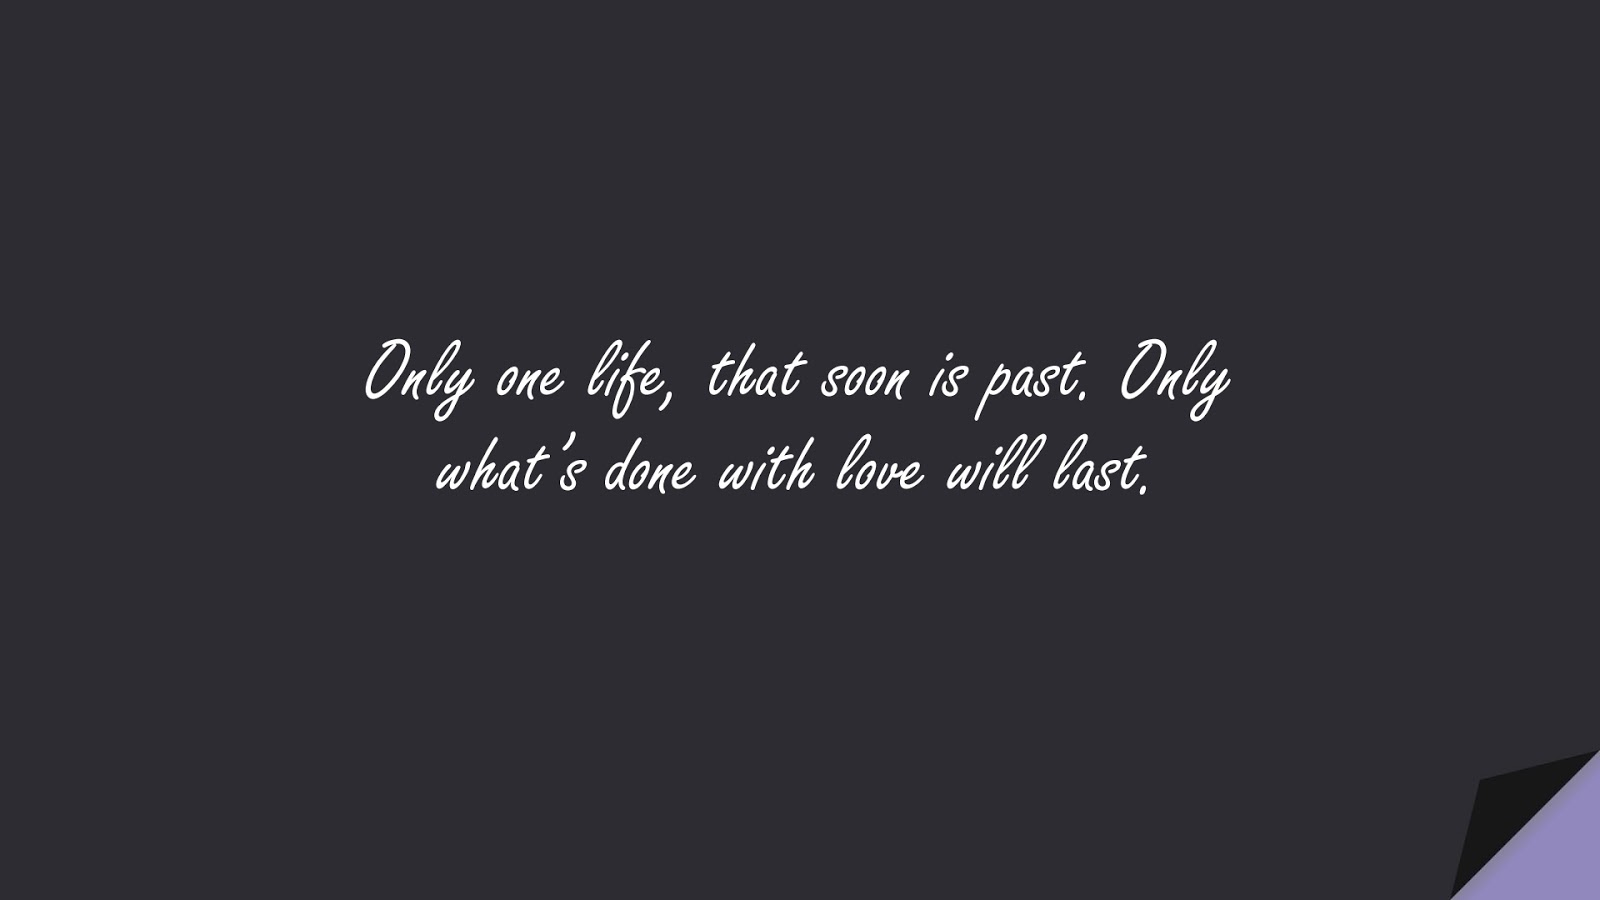 Only one life, that soon is past. Only what's done with love will last.FALSE